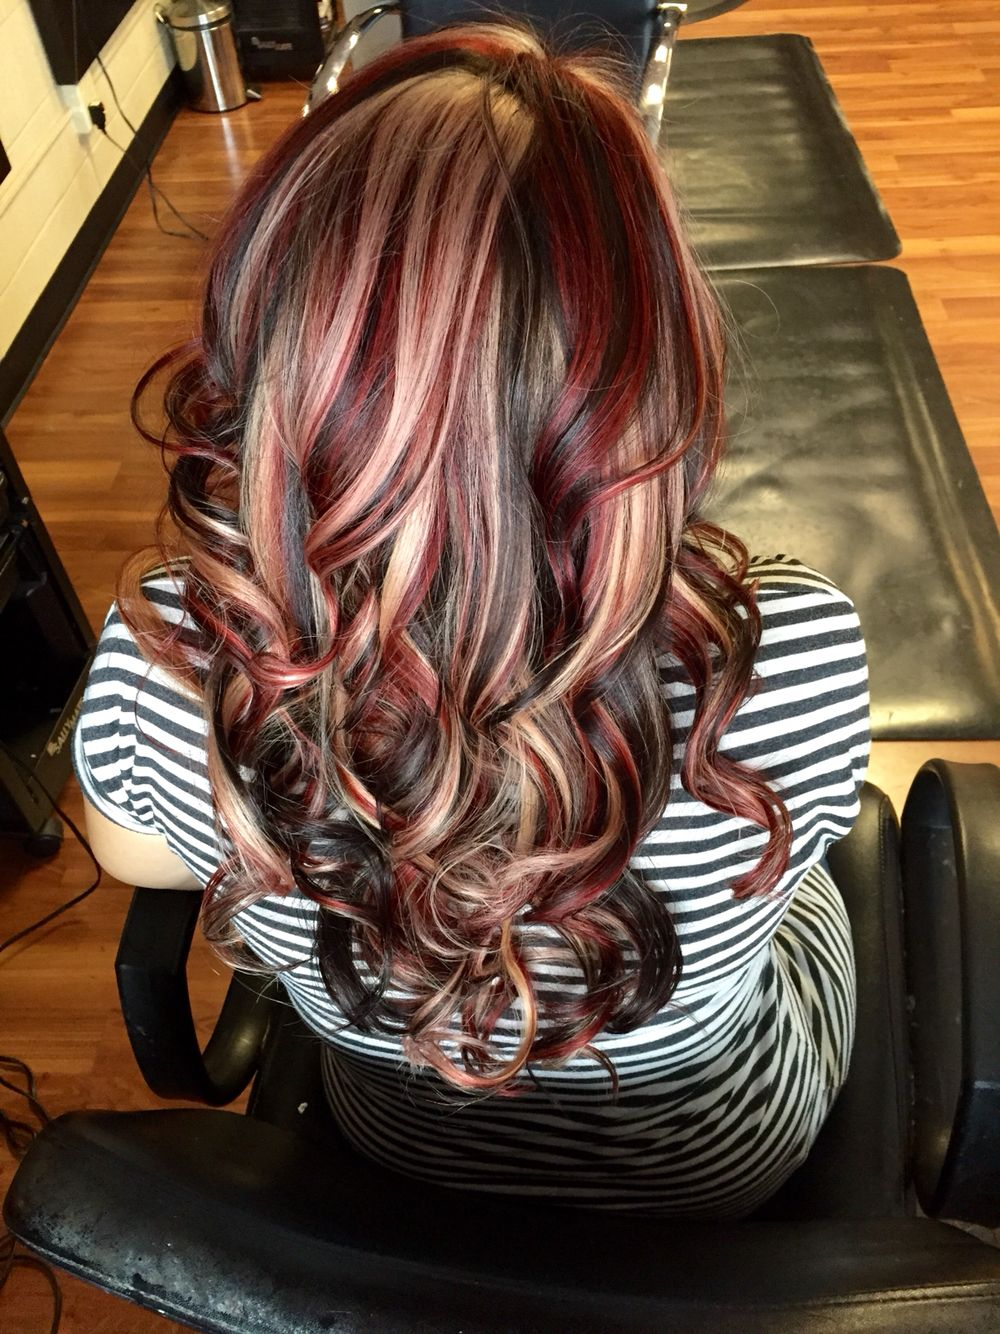 Hair By Heather Chunky Highlight Lowlight With Black Red And Blonde Hair Styles Long Hair Styles Hair Highlights